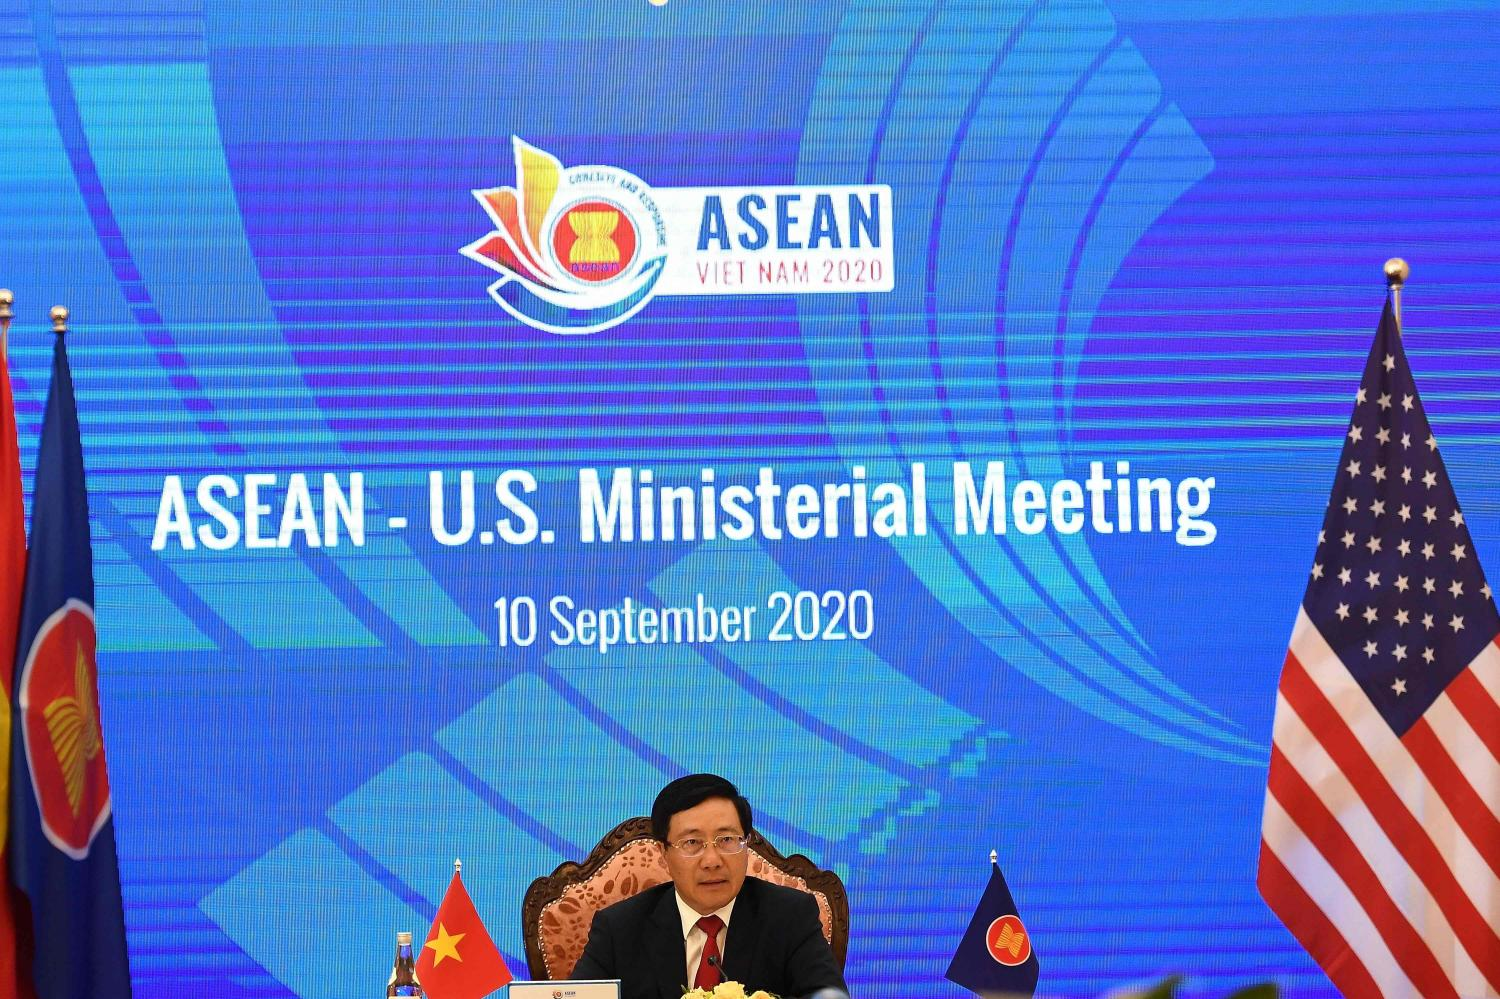 Vietnam's Foreign Minister Pham Binh Minh addresses a live video conference during the Association of Southeast Asian Nations-US Ministerial Meeting, held online due to the Covid-19, in Hanoi last Thursday. AFP